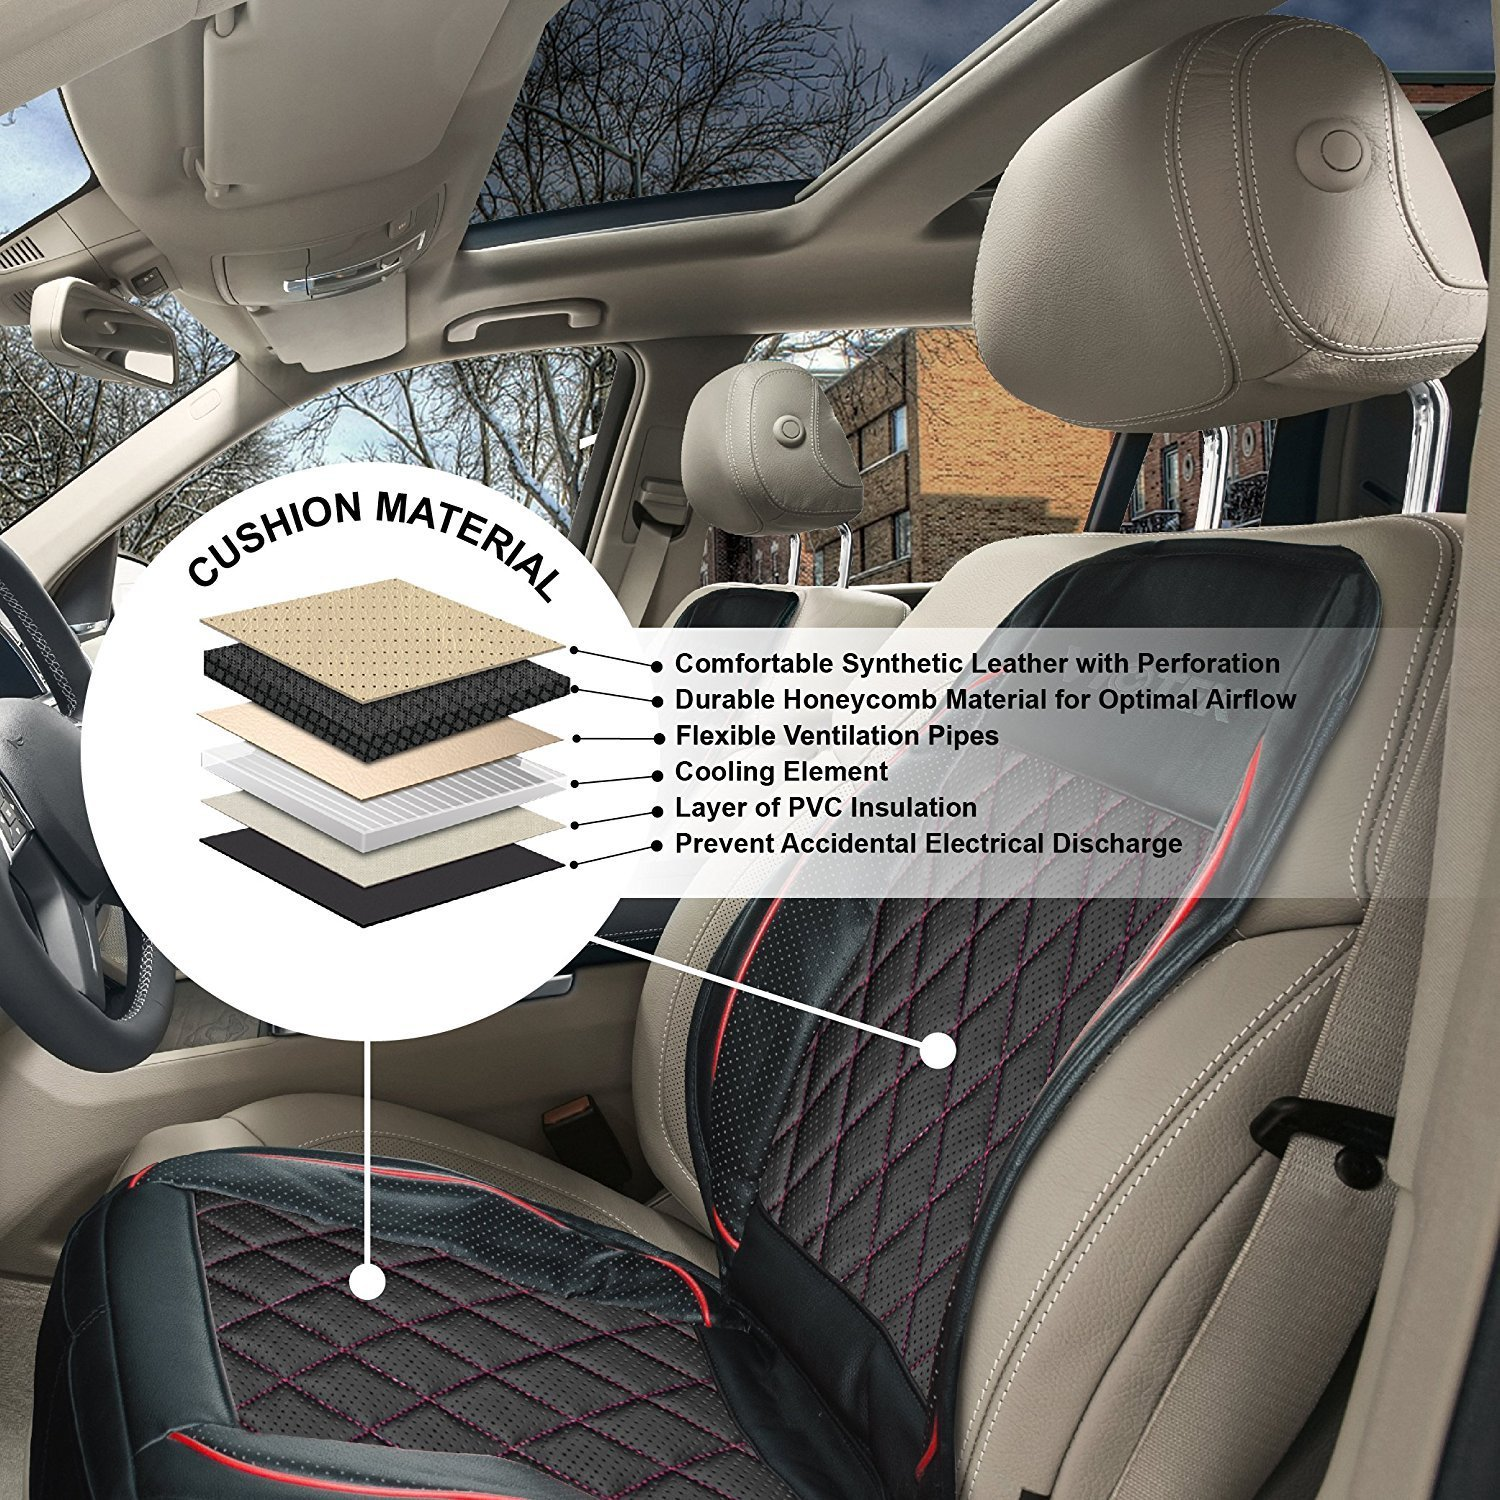 Groovy Viotek Cooling Car Seat Cushions V2 Gamerscity Chair Design For Home Gamerscityorg